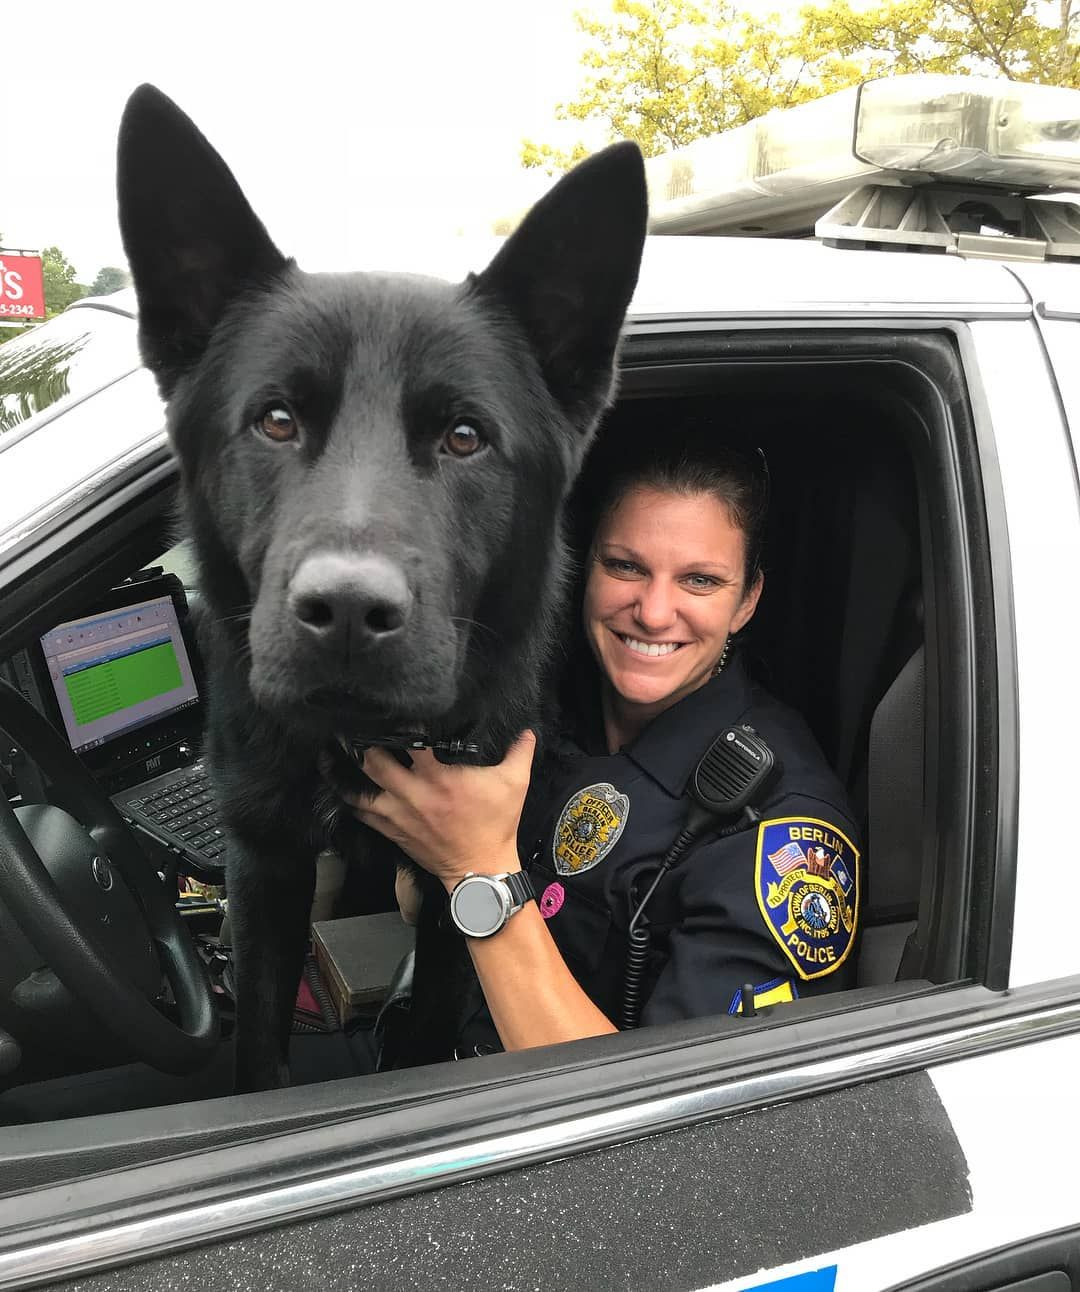 You Called For A Police Officer Can I Assist You K9 Casneruse Regram Via Gsdstagram Germanshepherd Working Dogs German Shepherd Dogs Military Dogs